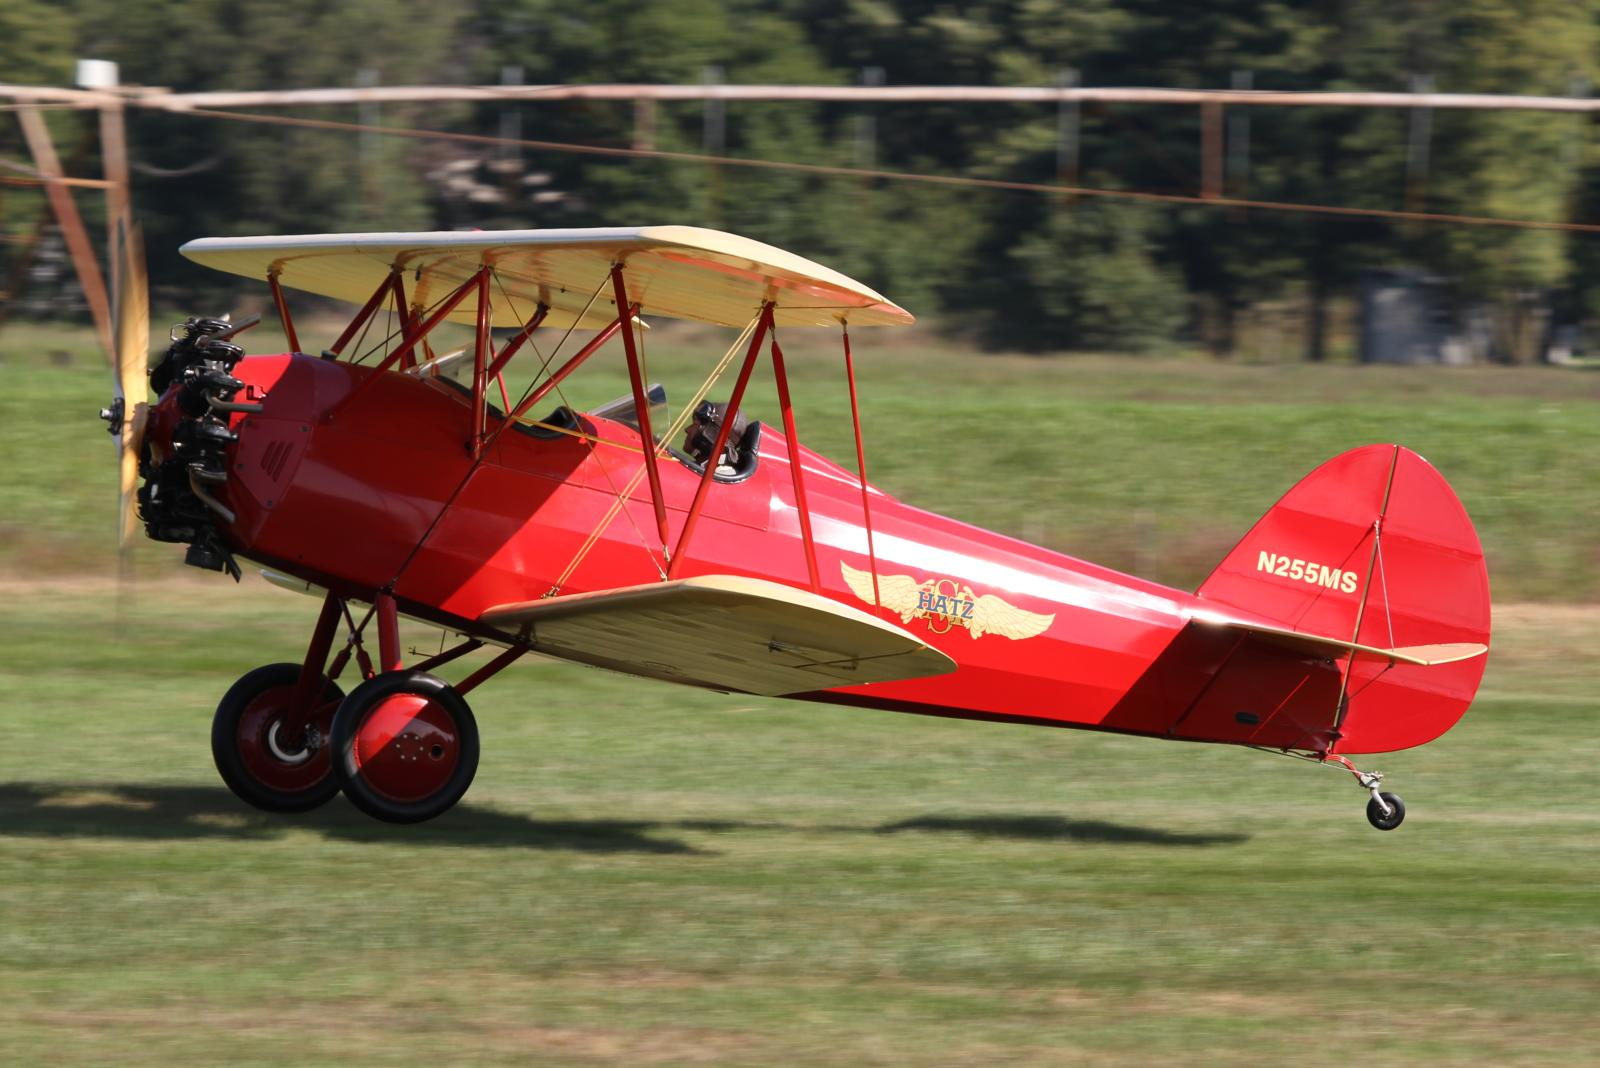 File Hatz Biplane N255ms Jpg Wikimedia Commons